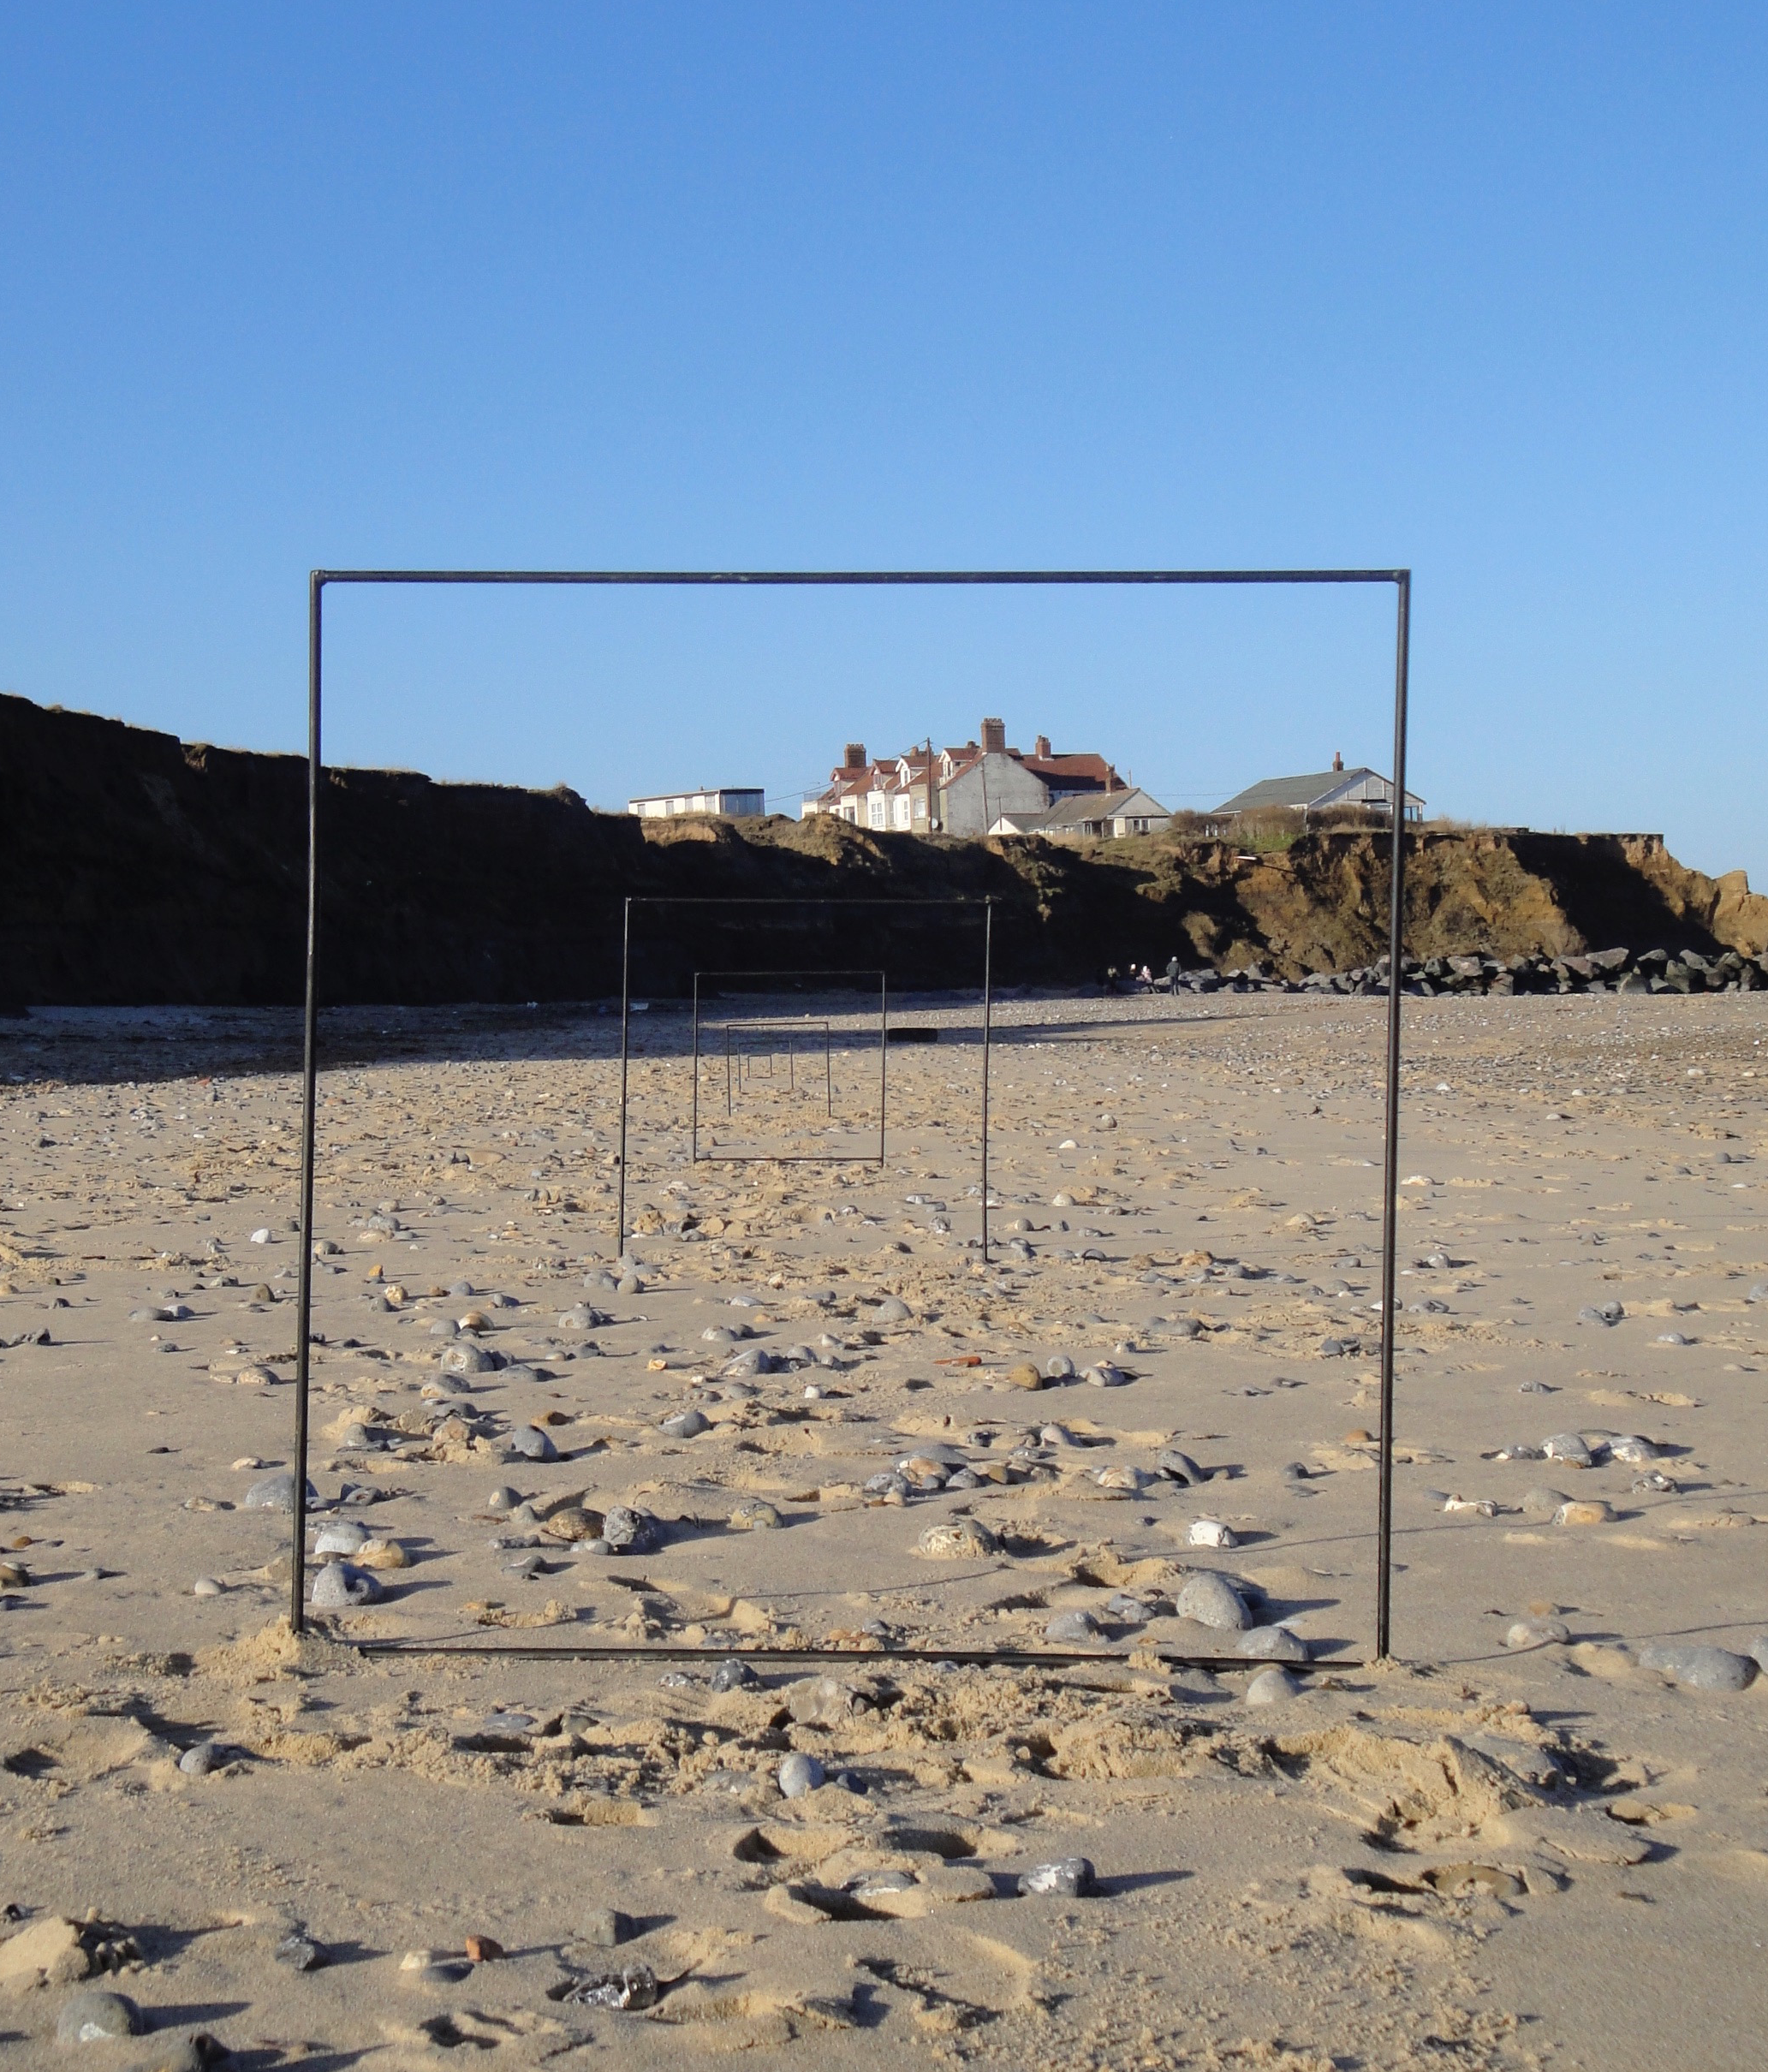 This image comes from an installation Kaitlin Ferguson made on Happisburgh beach in Norfolk, annually measuring its dramatic changes through climate change from 2014 onwards